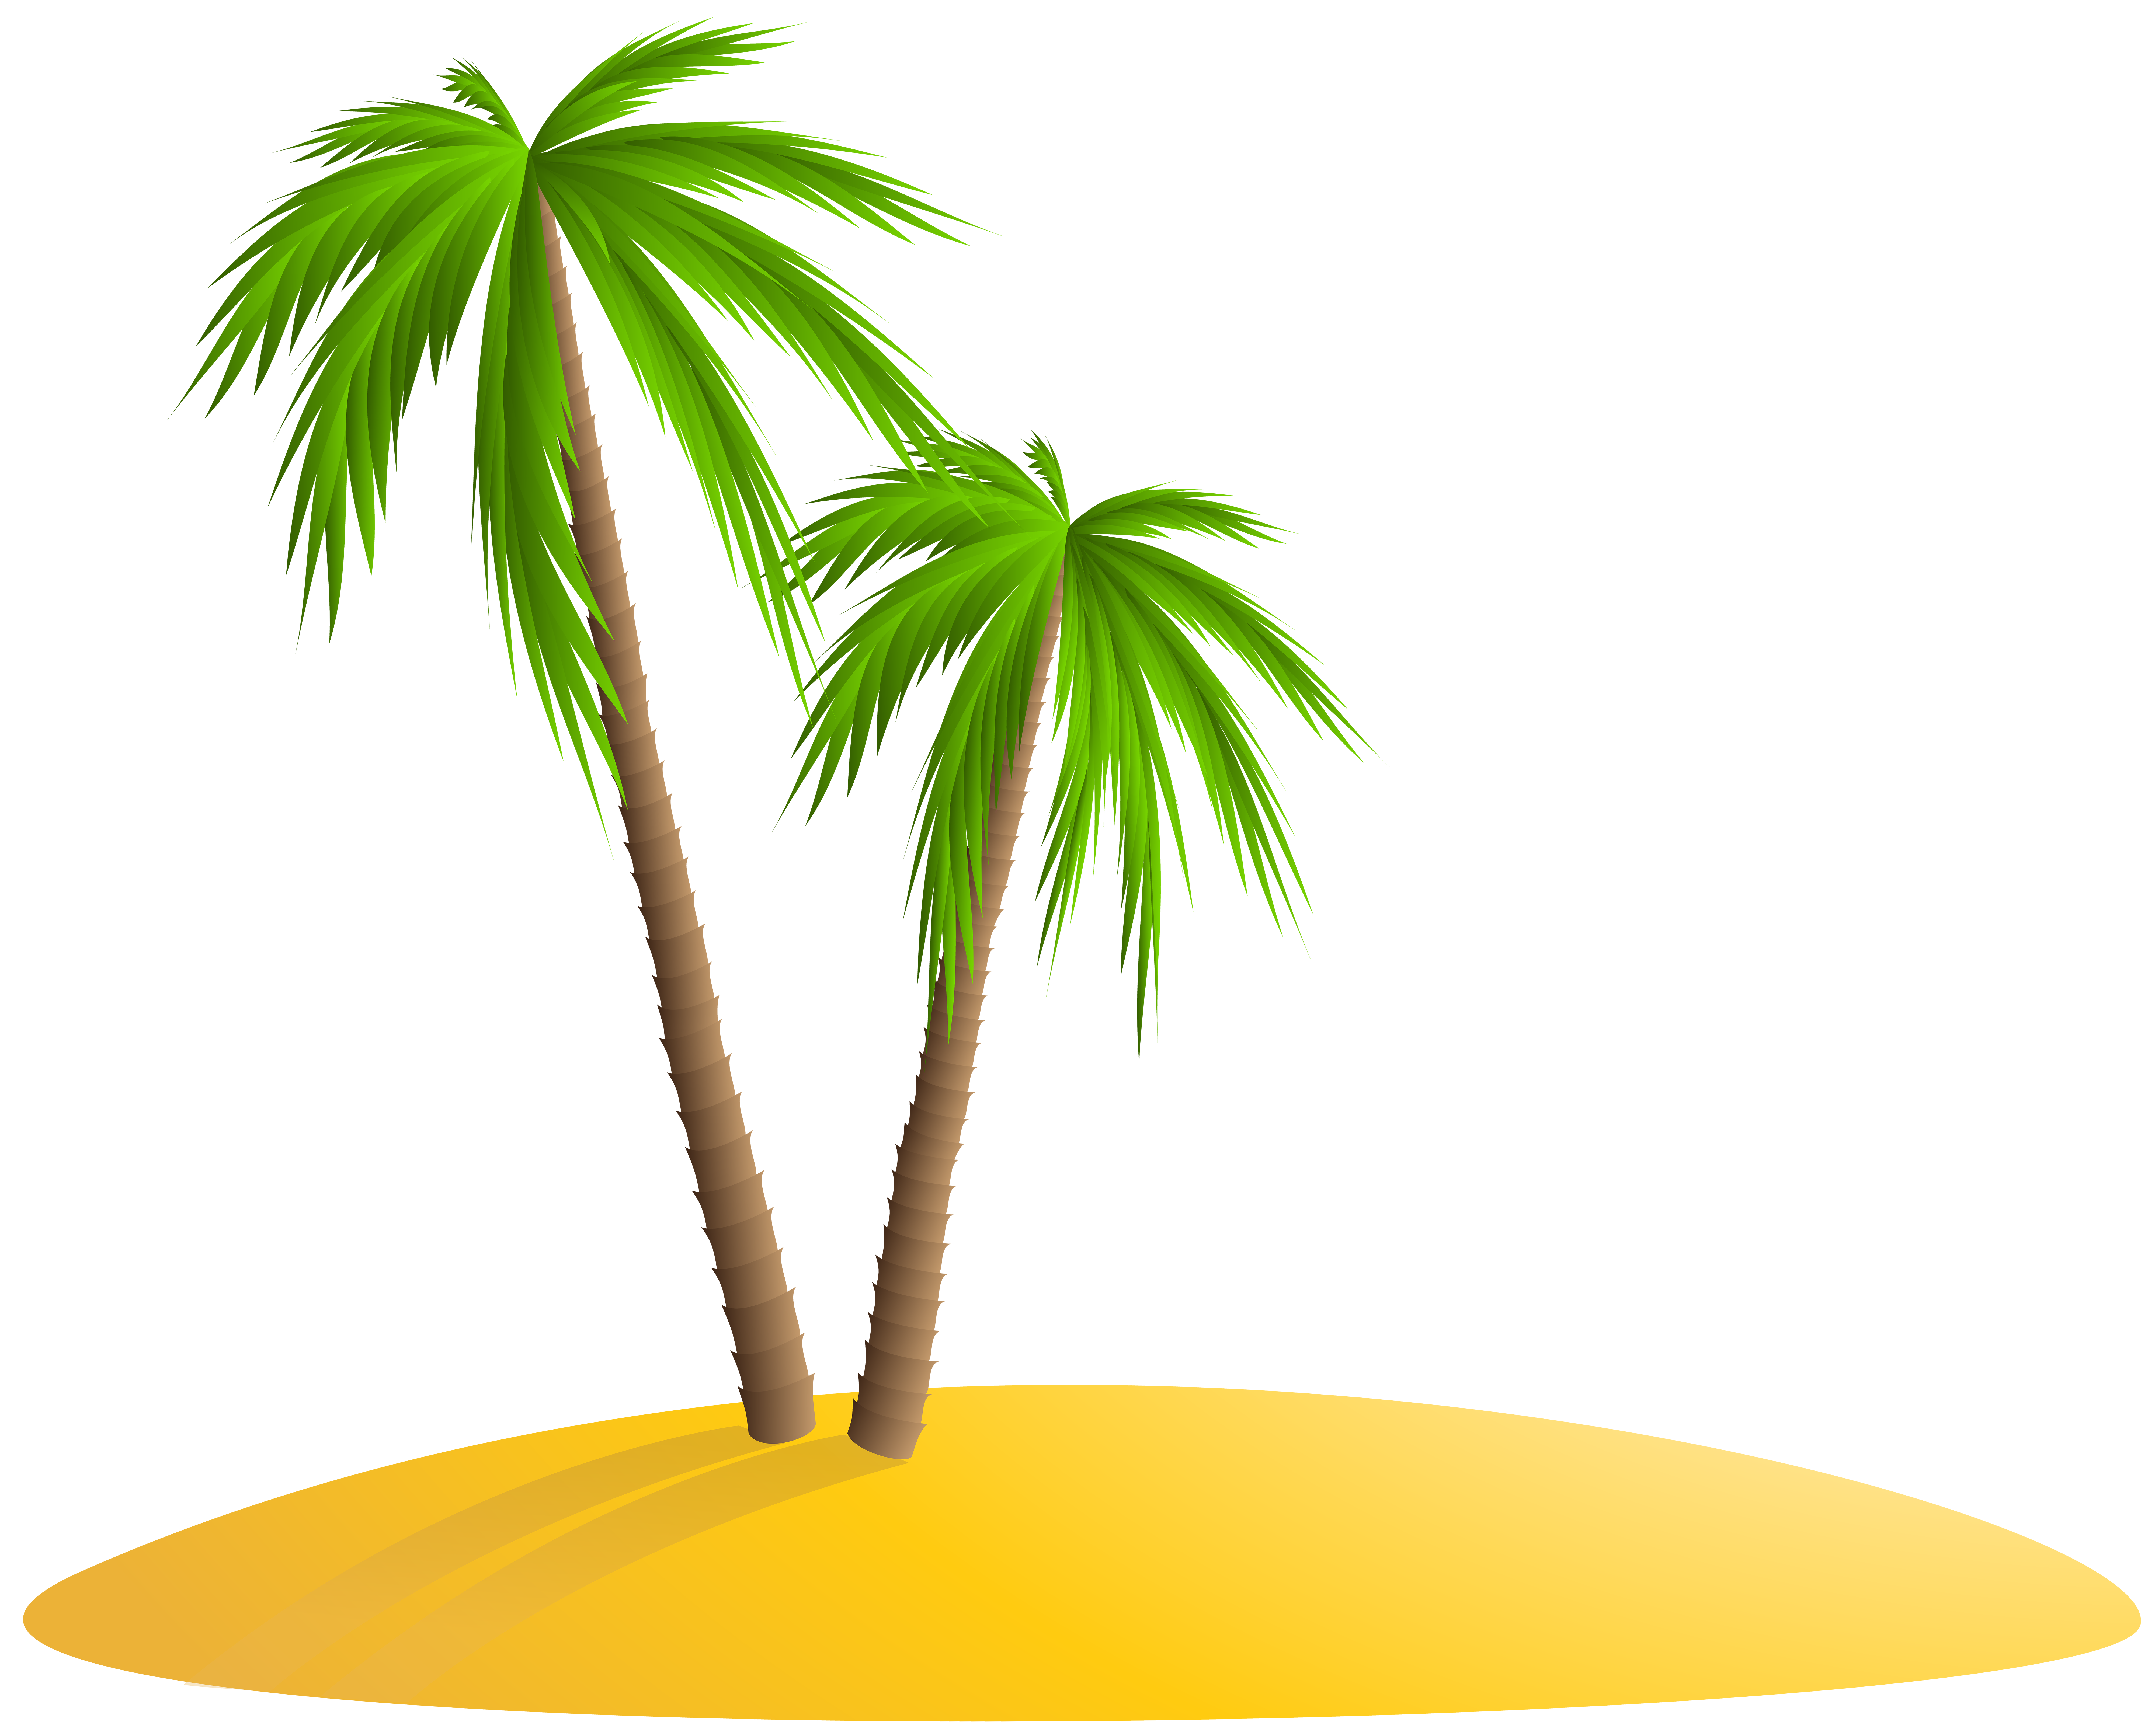 island clipart tropical island